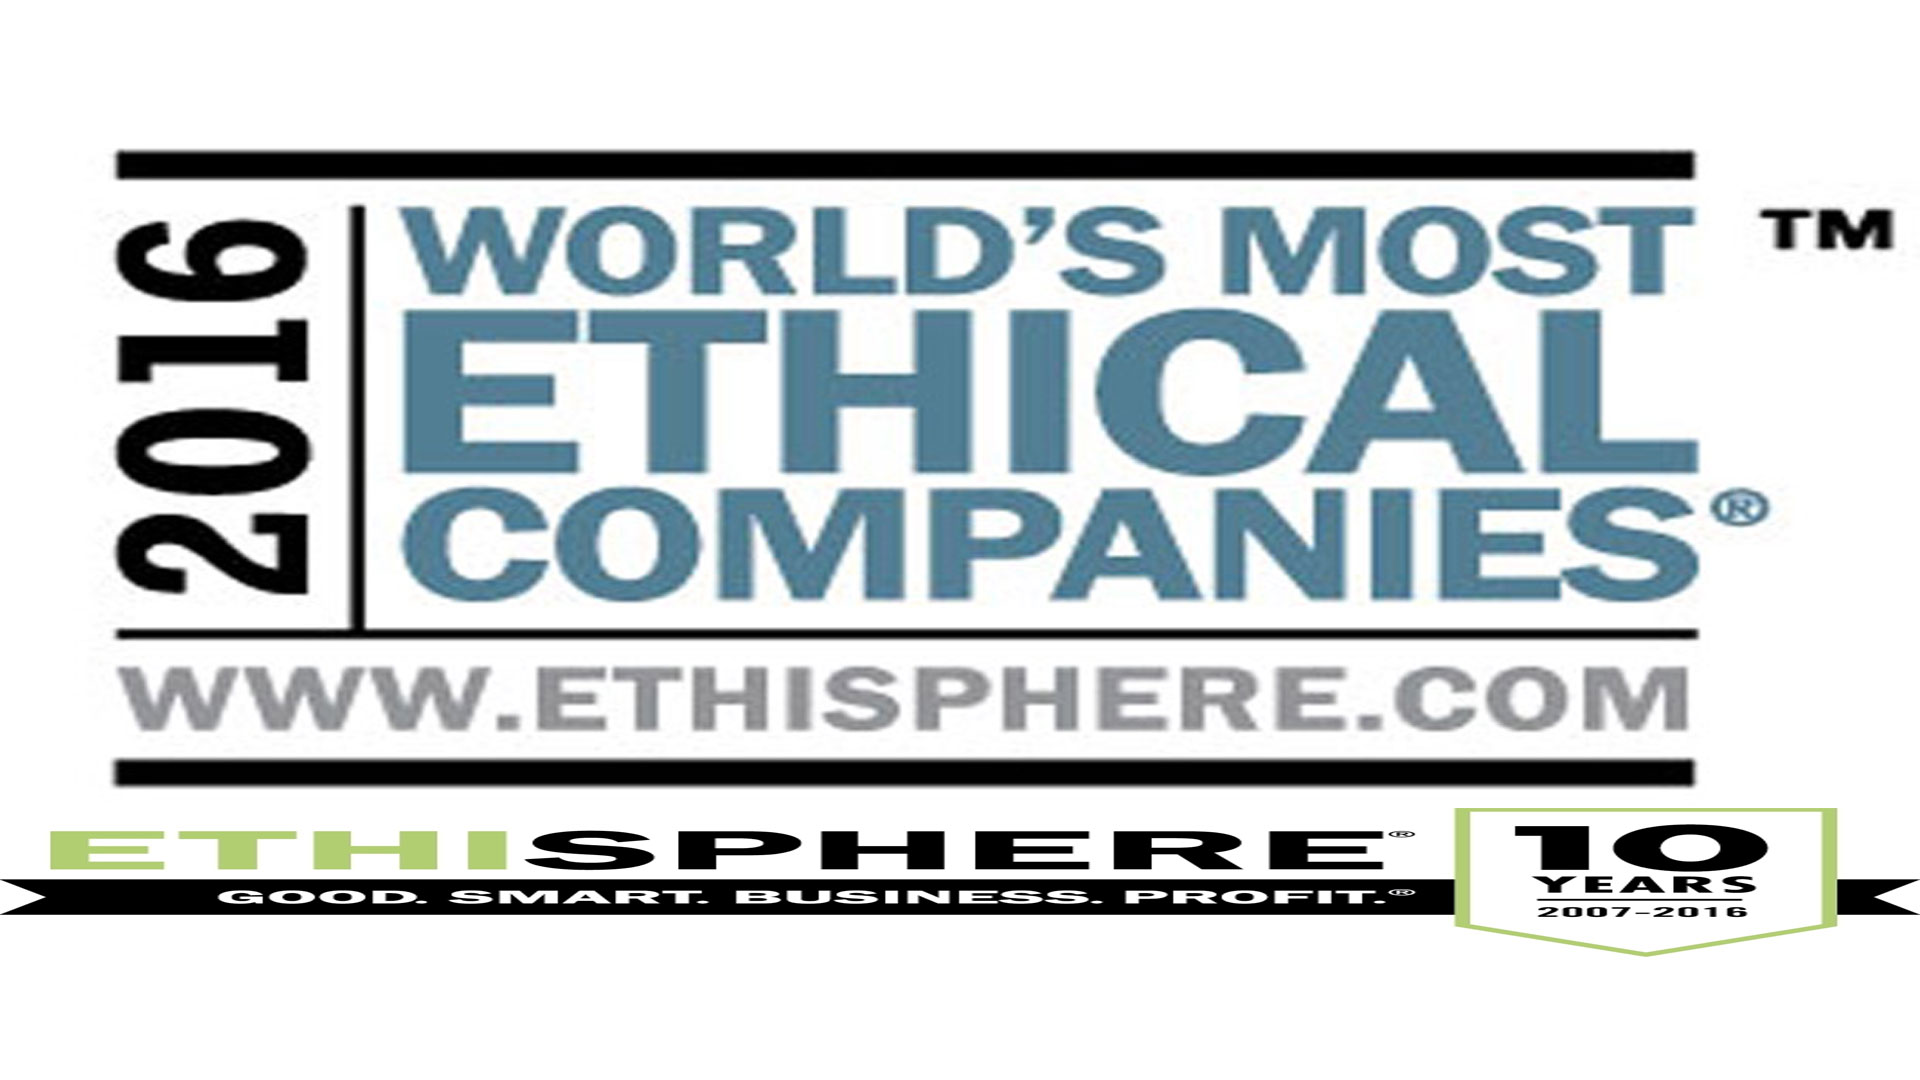 Ethisphere Announces the 2015 World's Most Ethical Companies®